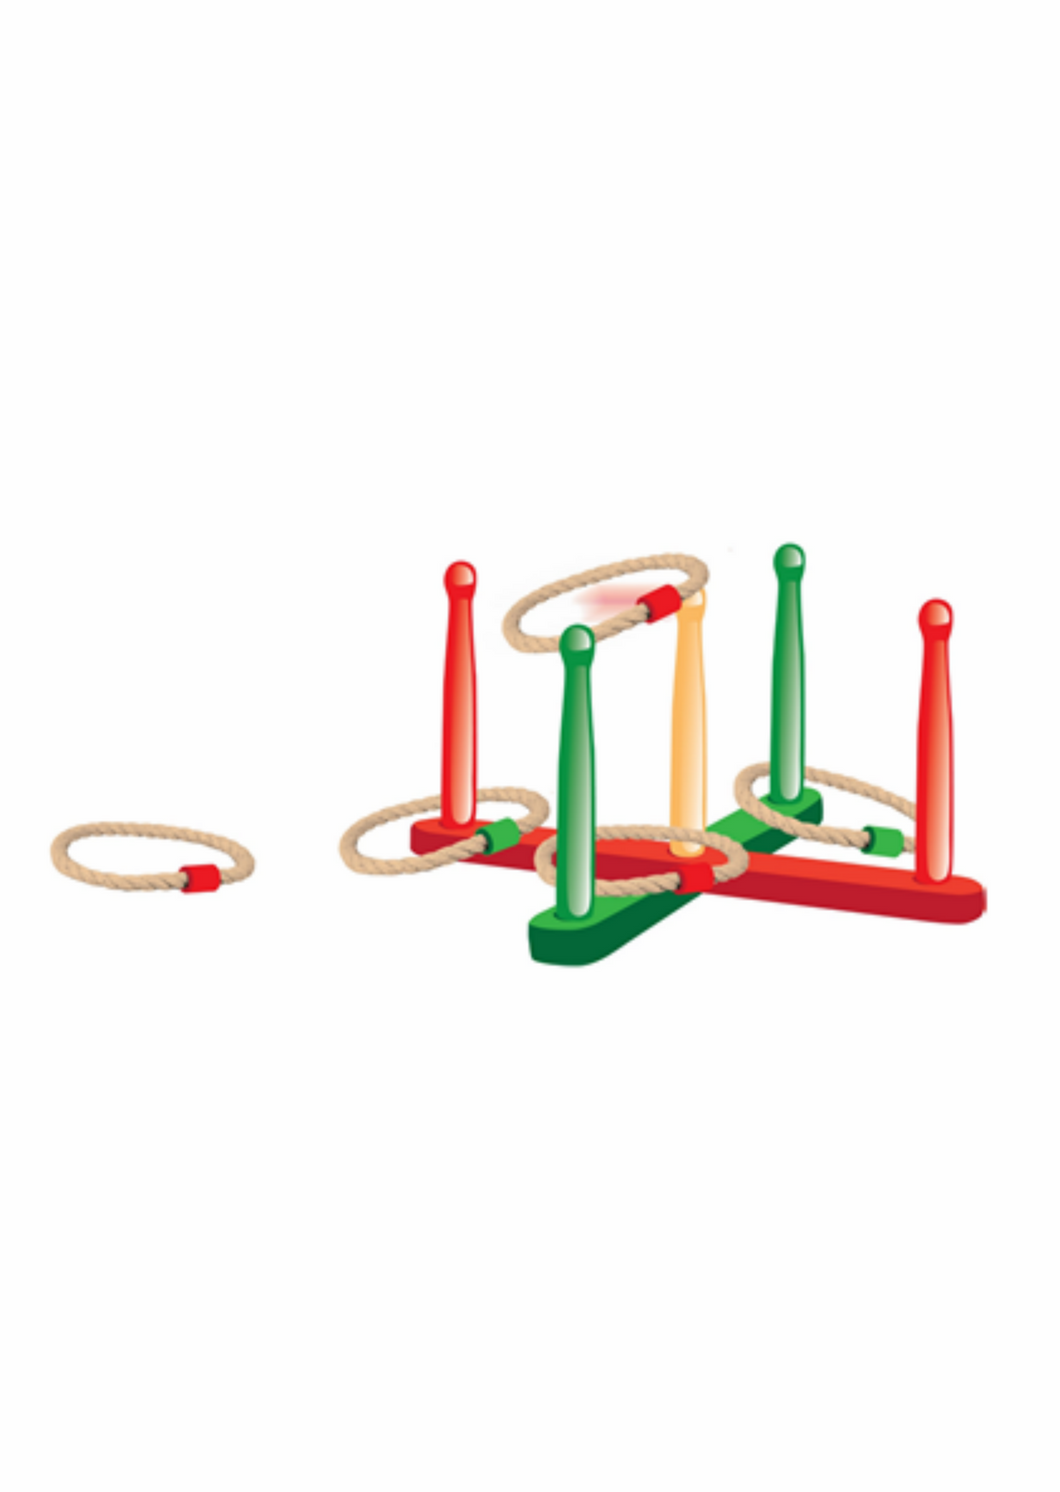 easy days Games - Quoits